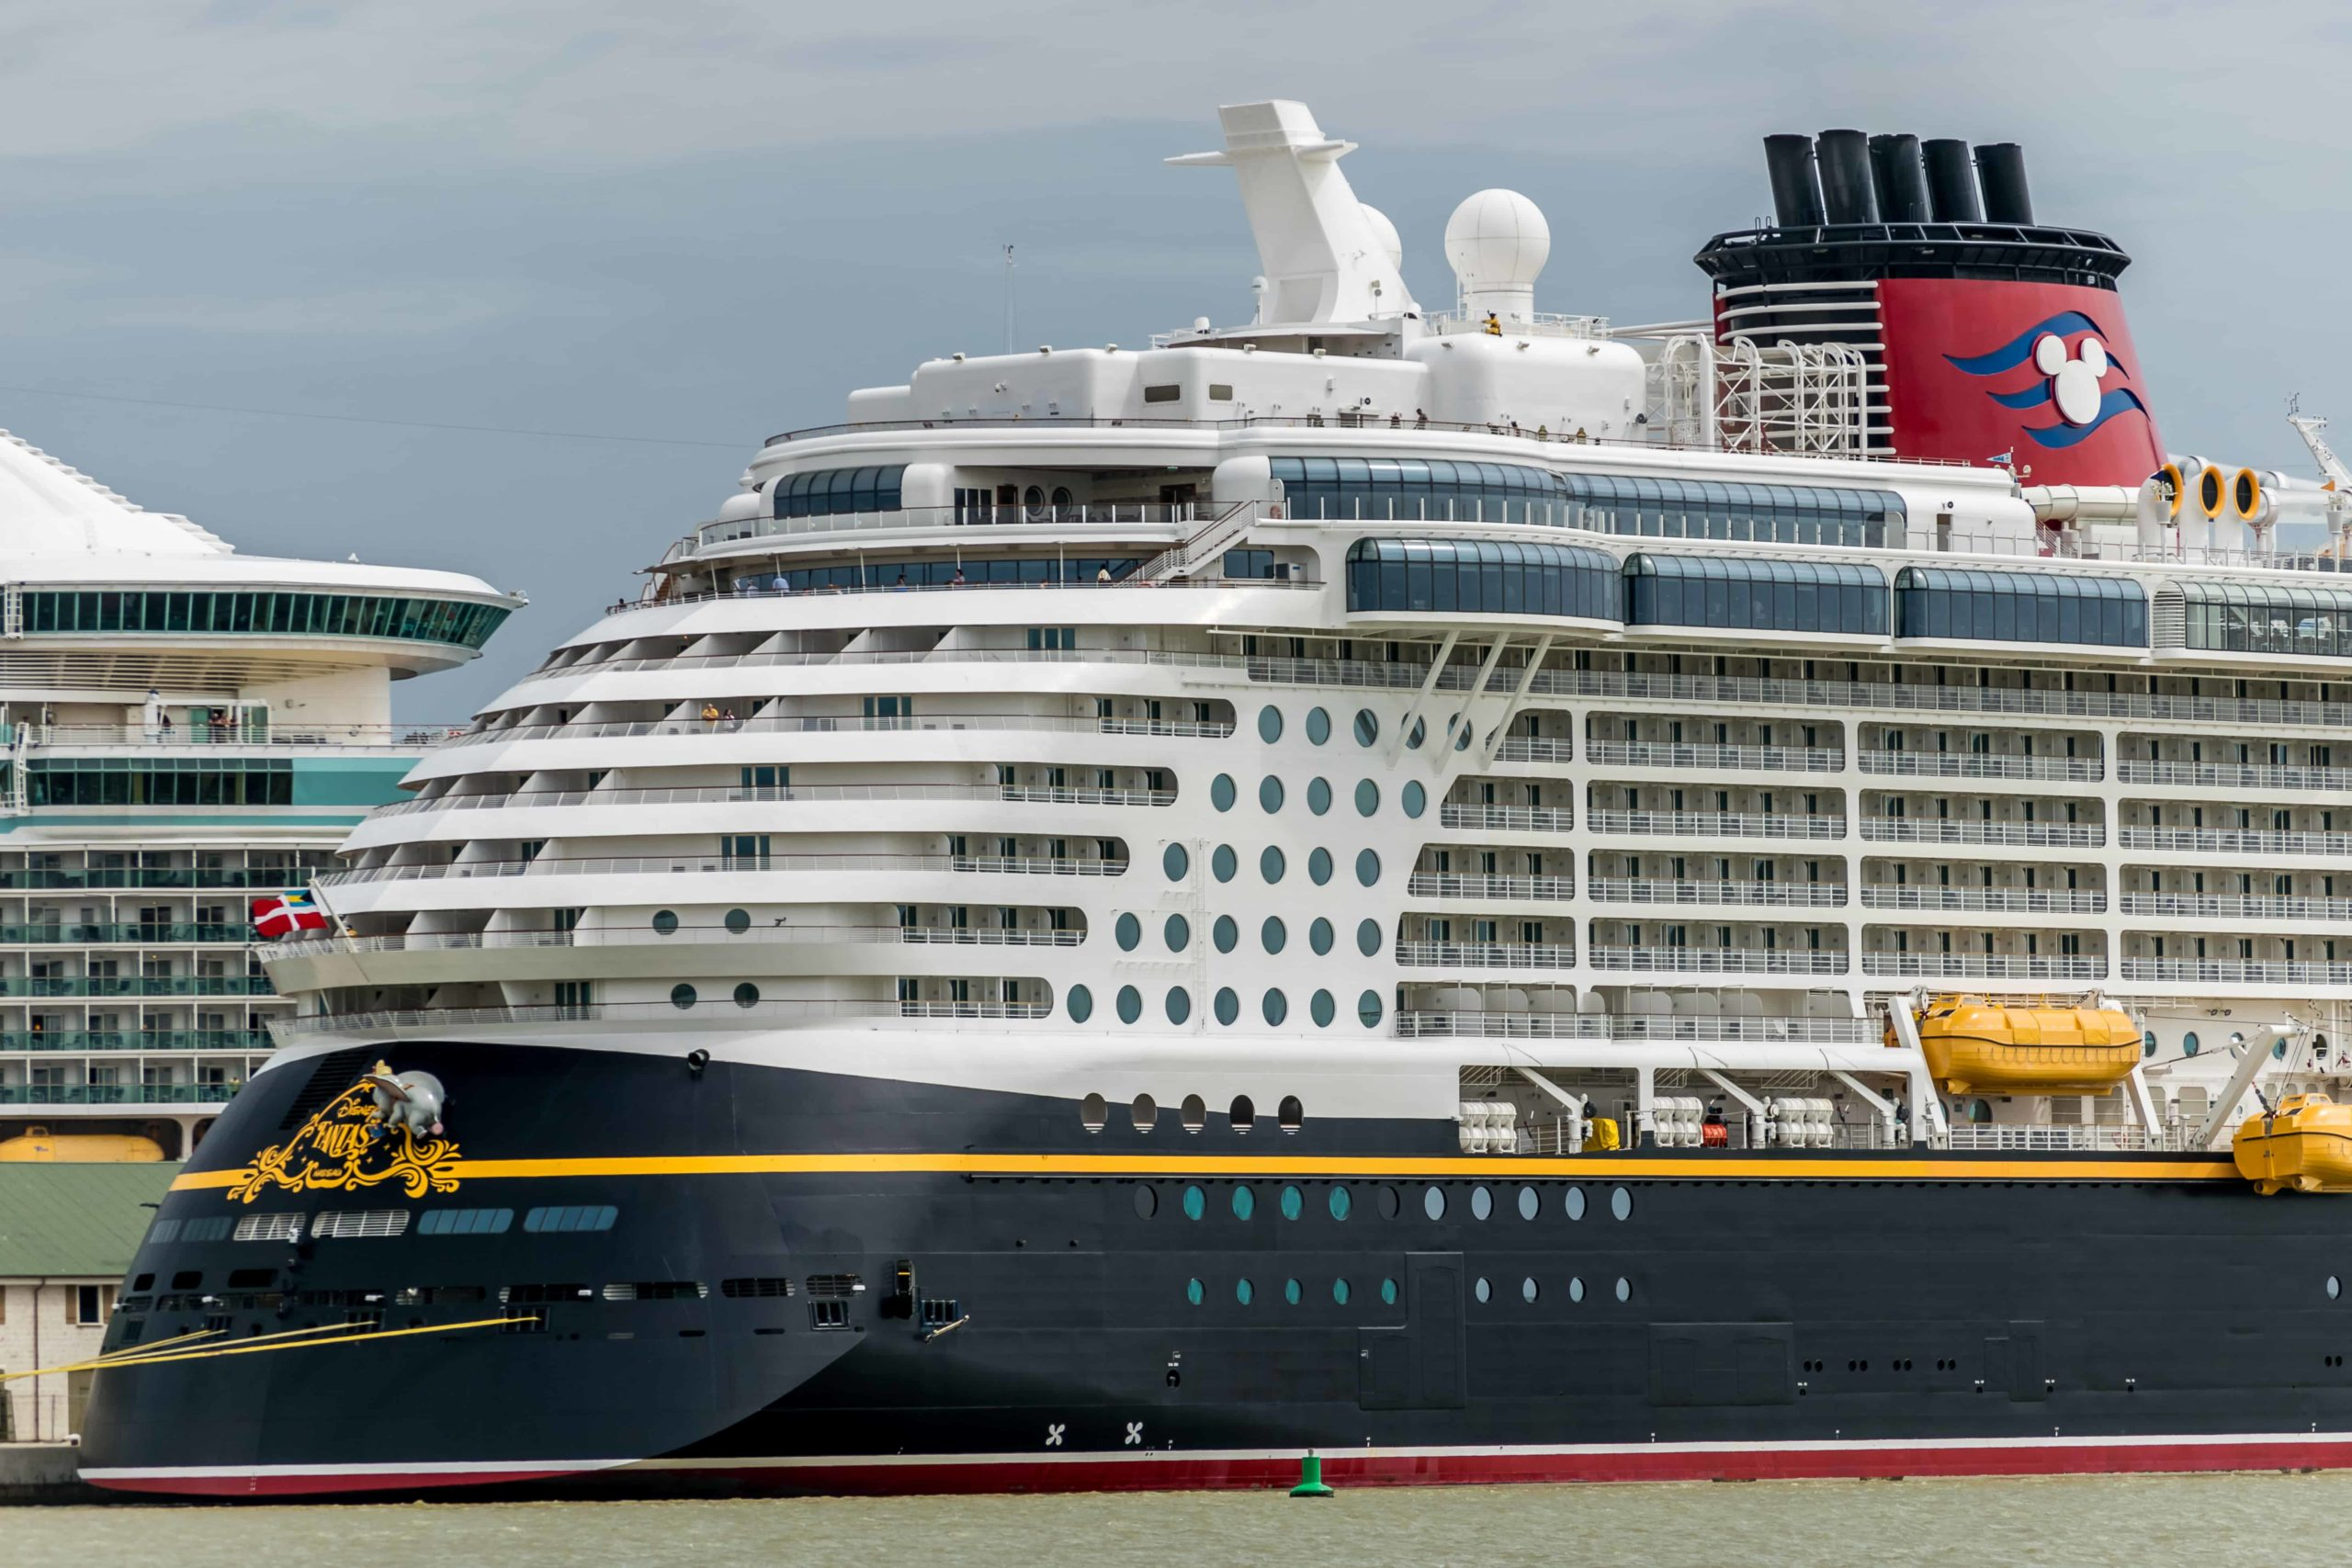 Are You A Disney Cruise Expert?